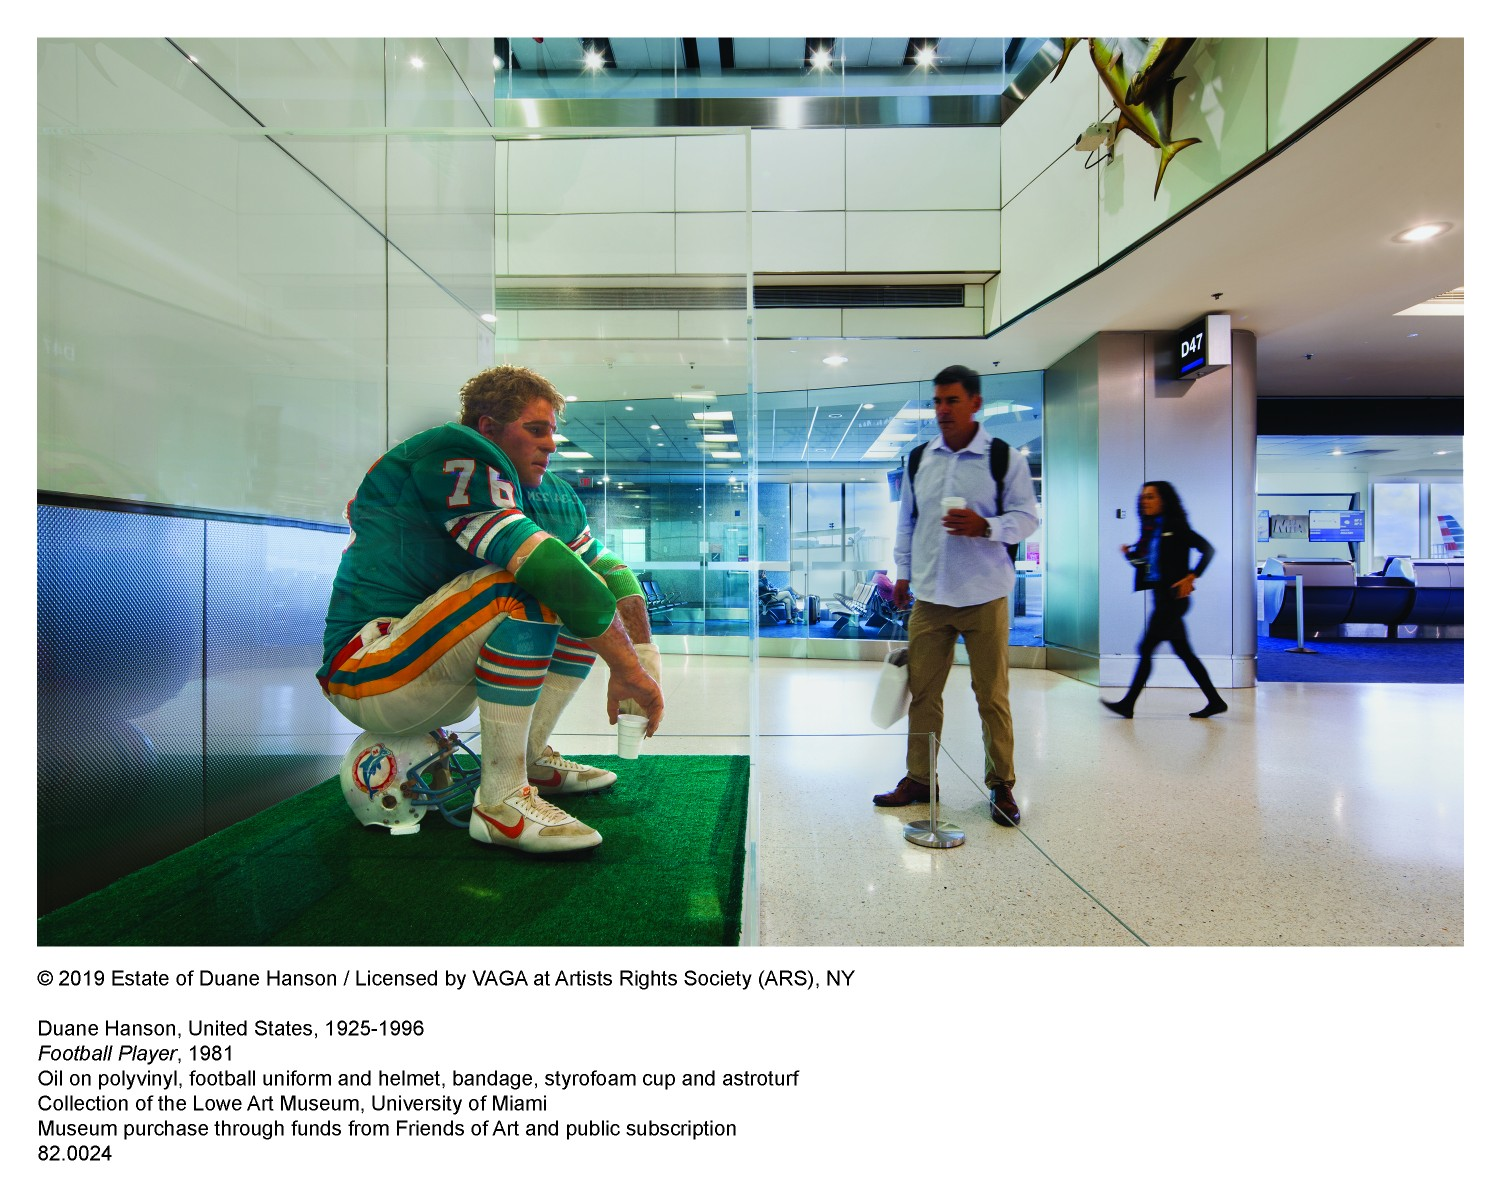 Duane Hanson Football Player Image with caption text 2